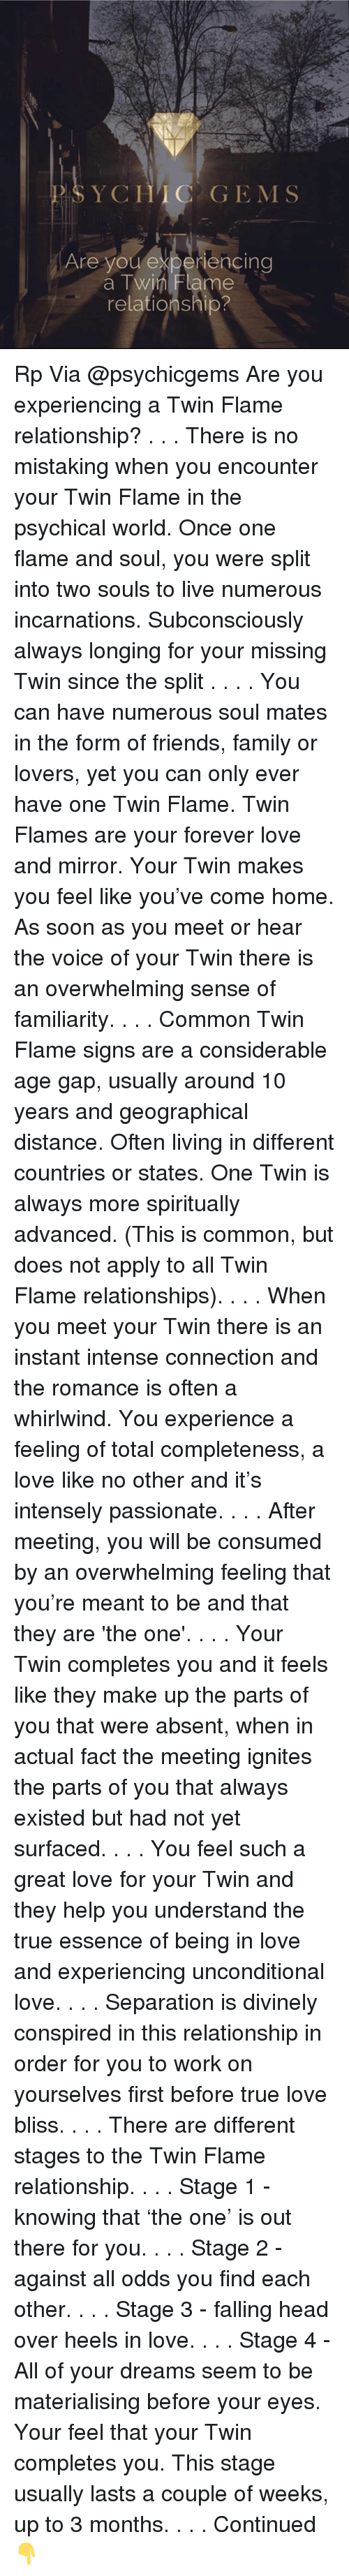 SYC HIC GEMS Are You Experiencing a TwinFlame Relationship